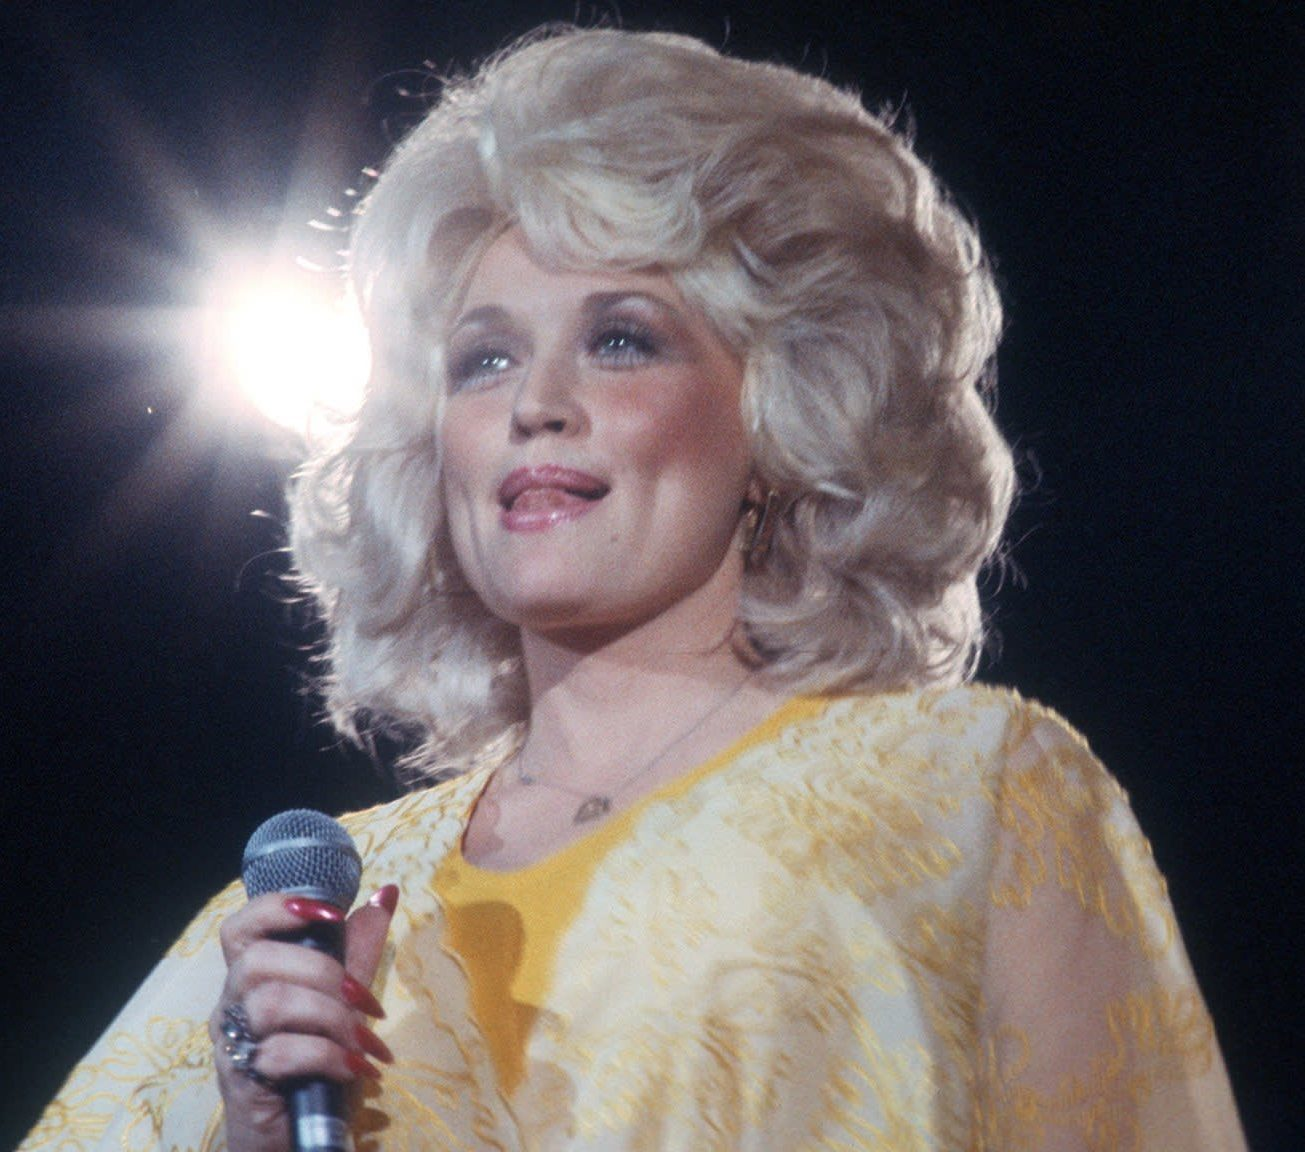 1 14 e1607946791520 Sparkling Facts About Dolly Parton, The Rhinestone Queen of Tennessee